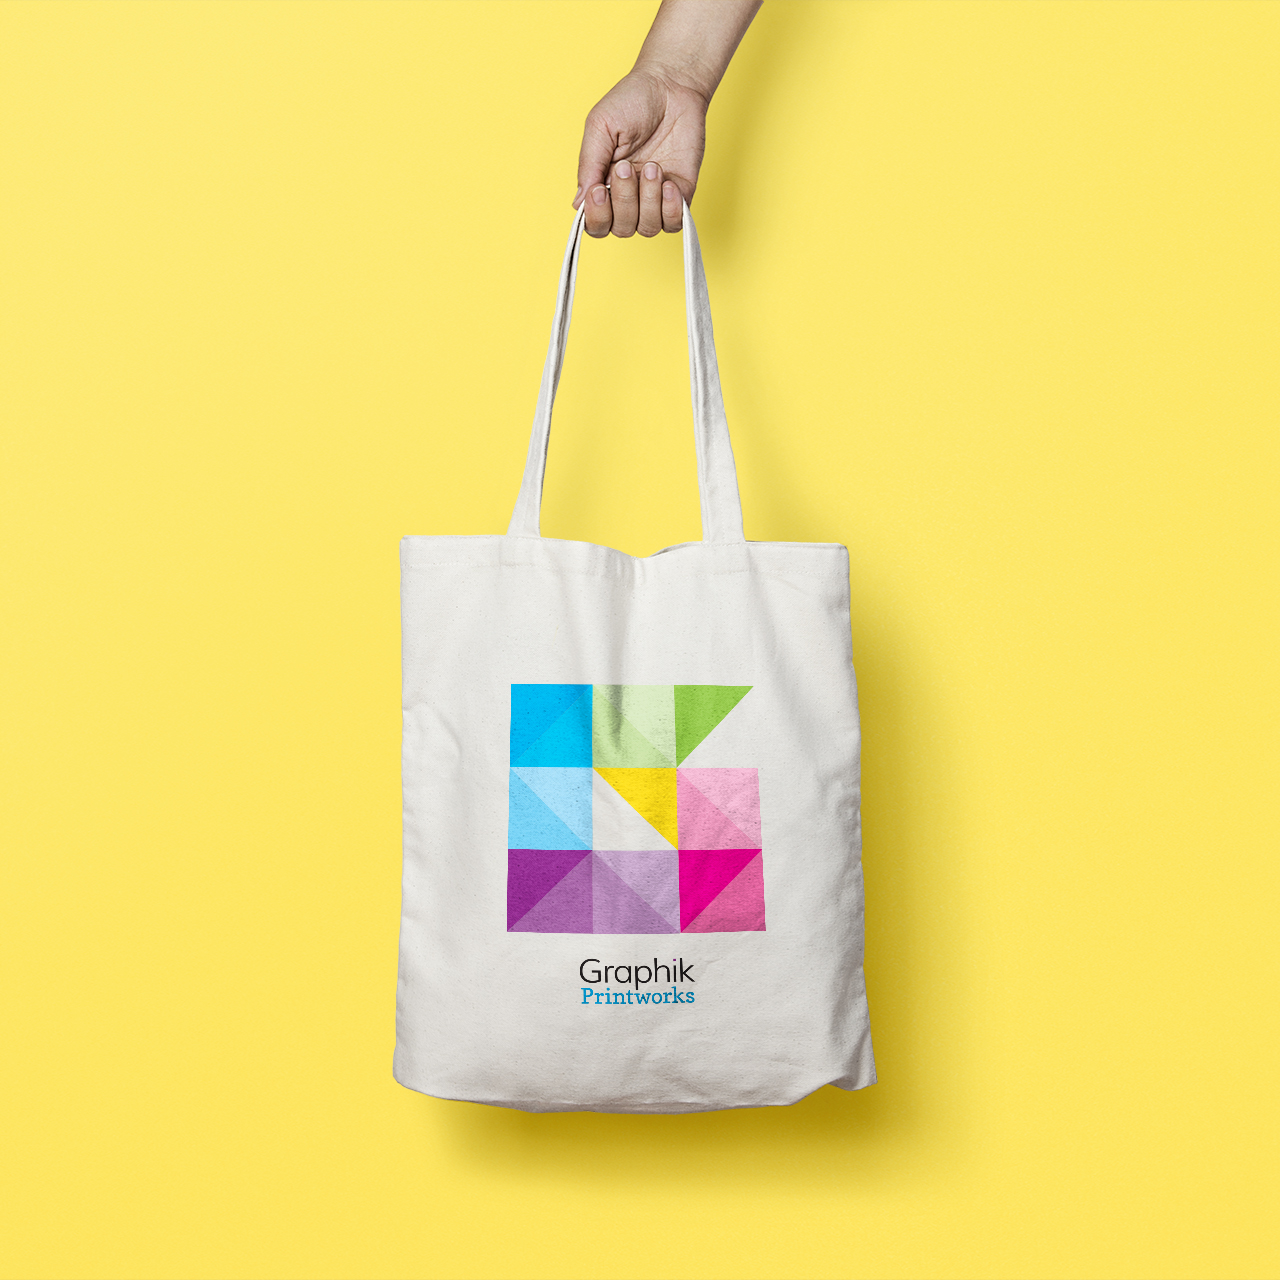 GP_Canvas-Tote-Bag-MockUp.jpg